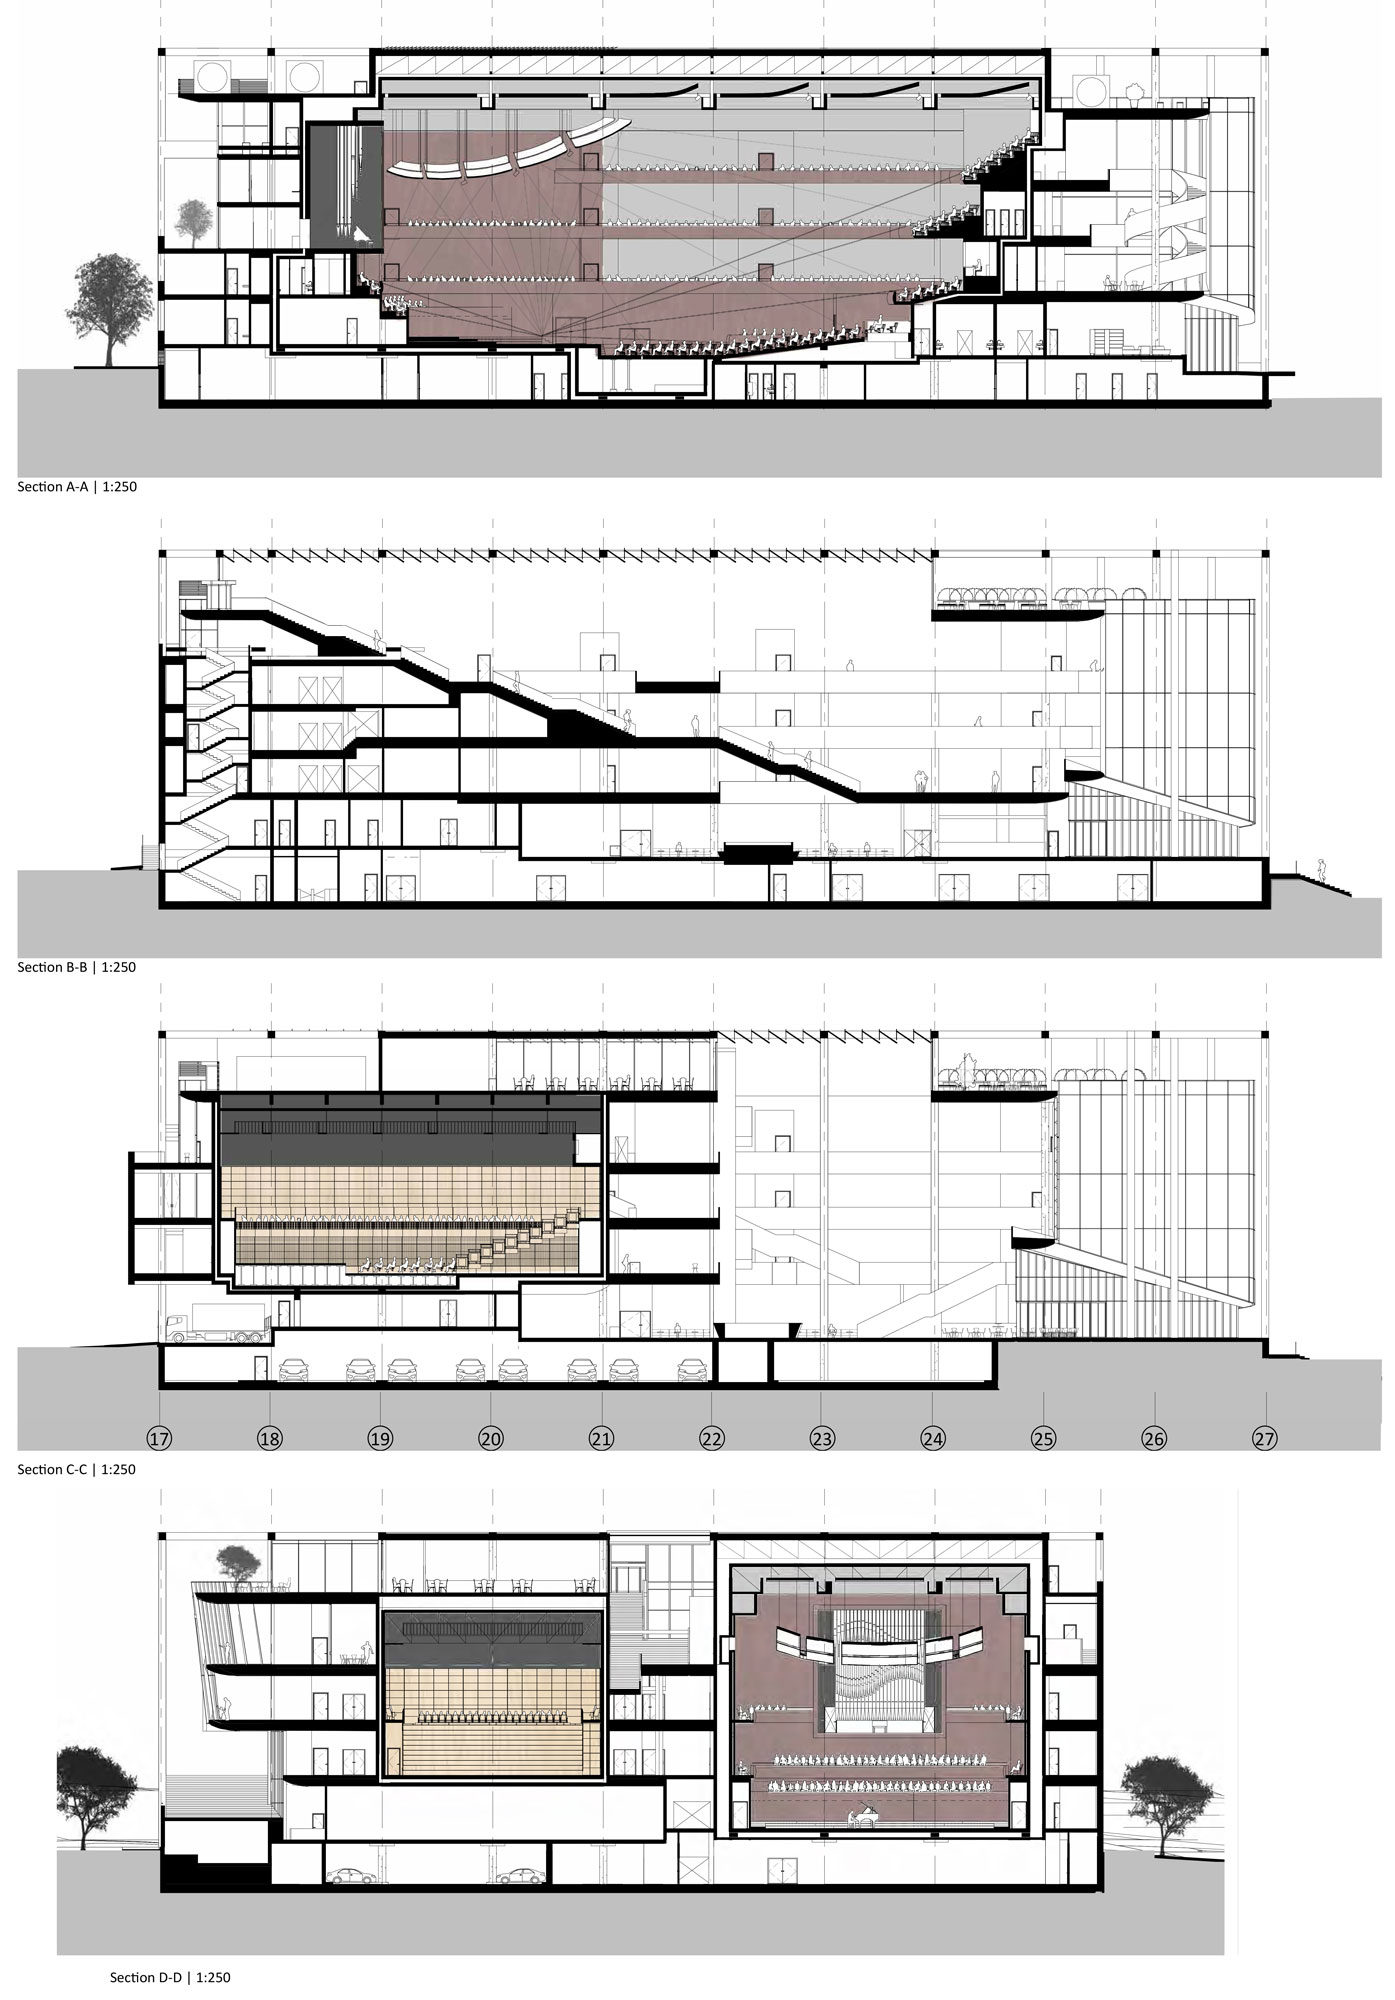 AR_Architecture_National_concert_hall_Sketches&Plans_015